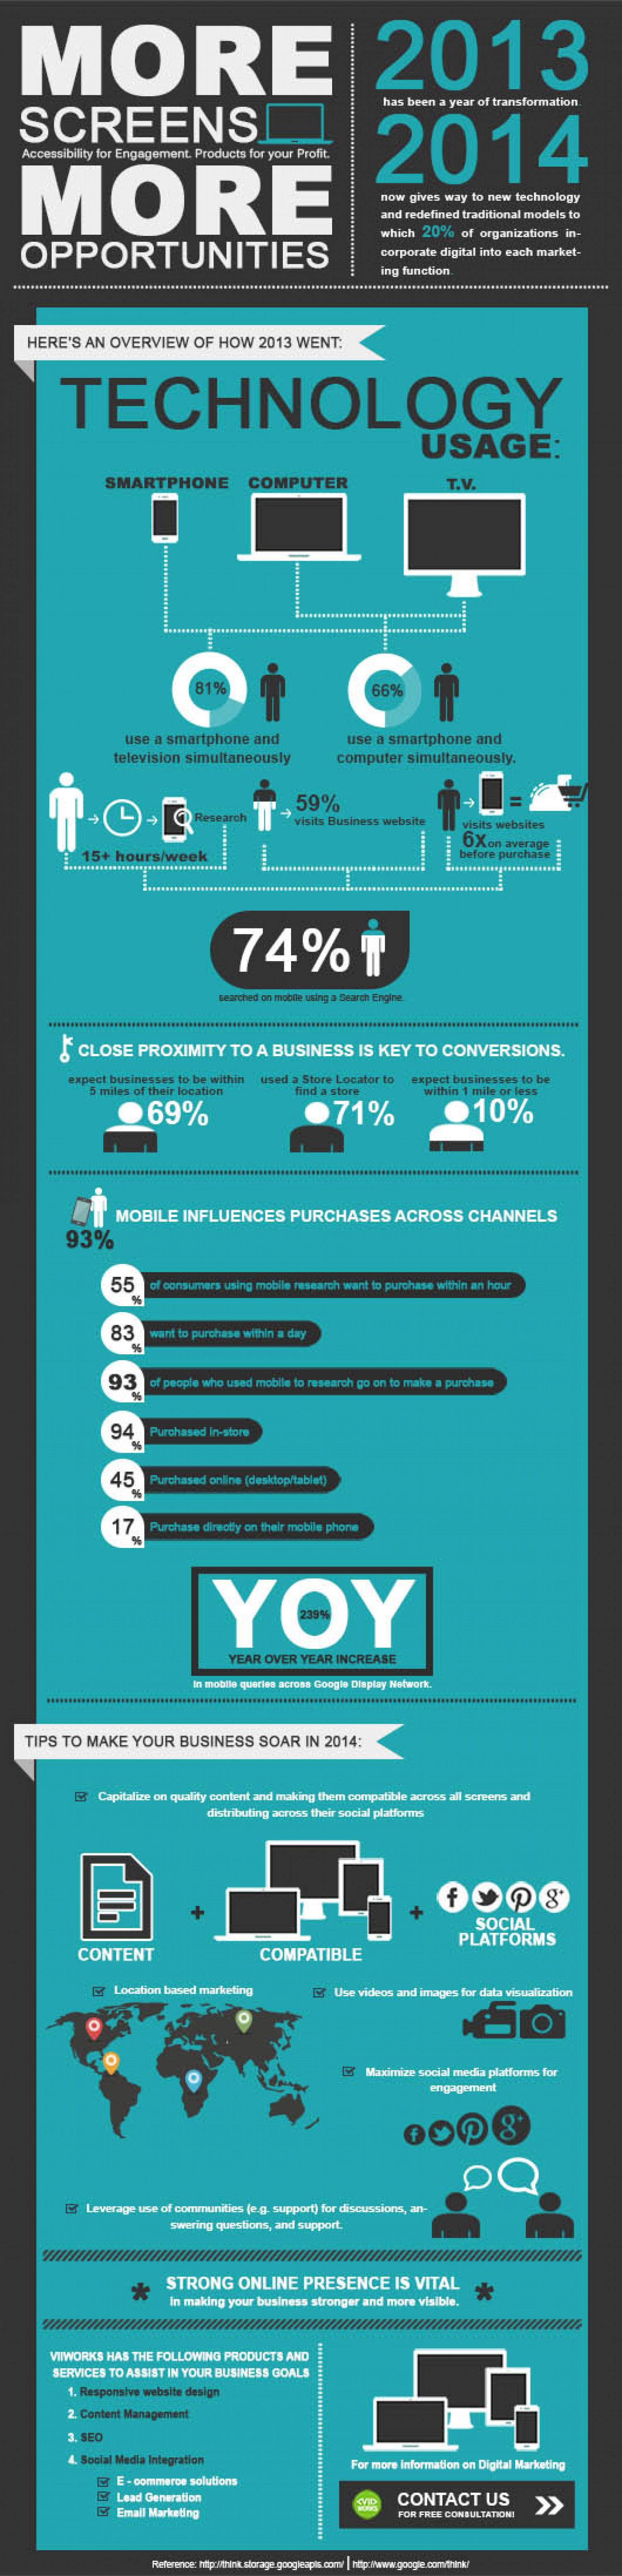 More Screens, More Opportunities  Infographic